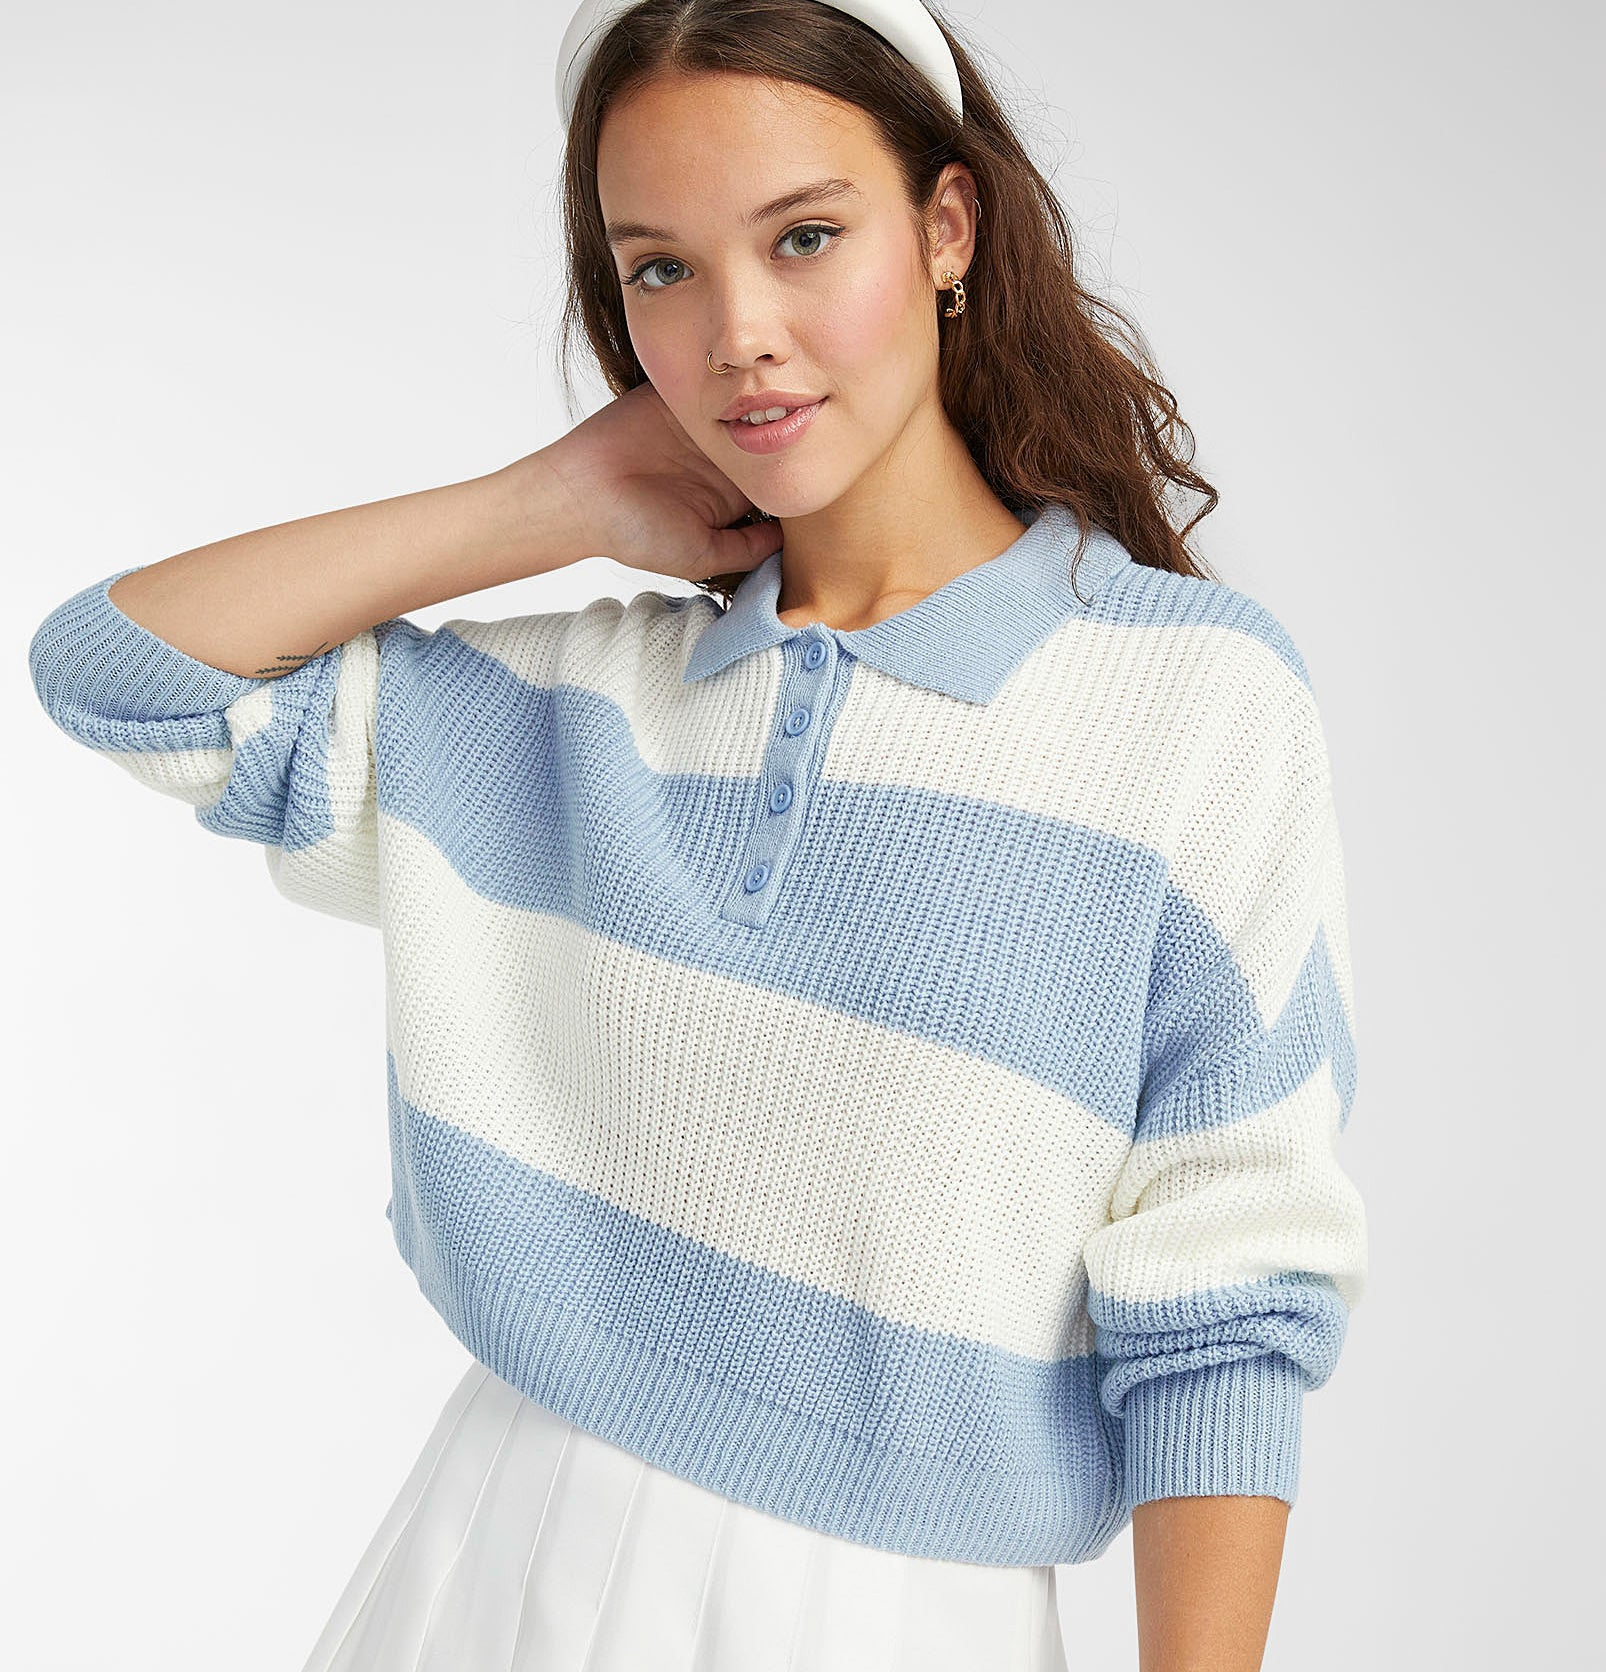 a person wearing the striped polo sweater with a skirt